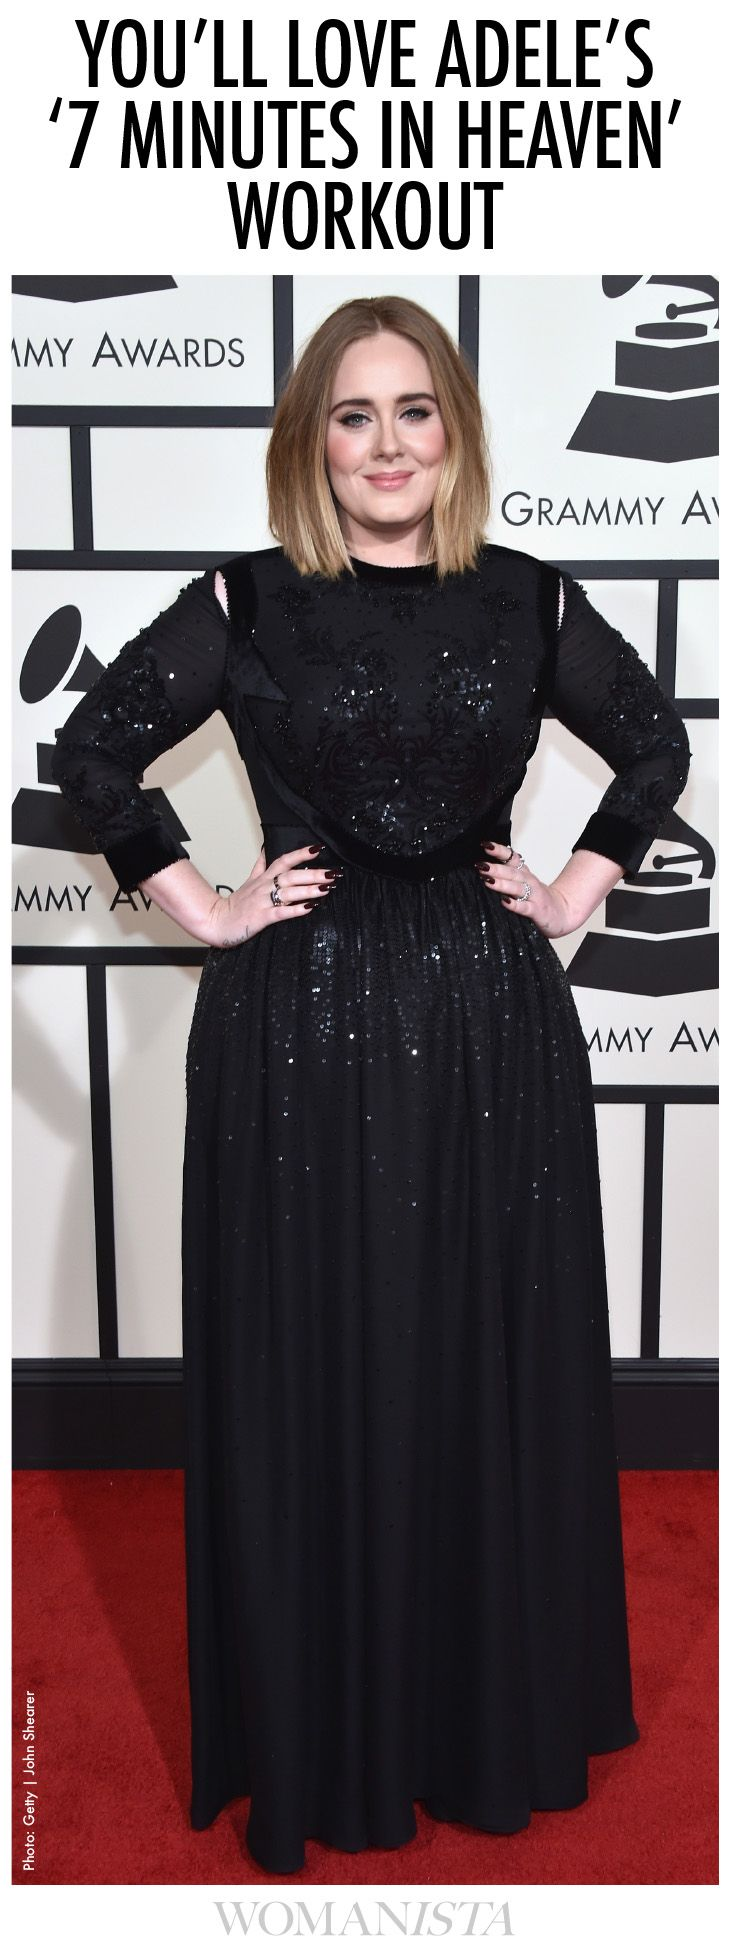 Try Adele's 7 Minute Workout to Burn Calories Fast - Womanista.com